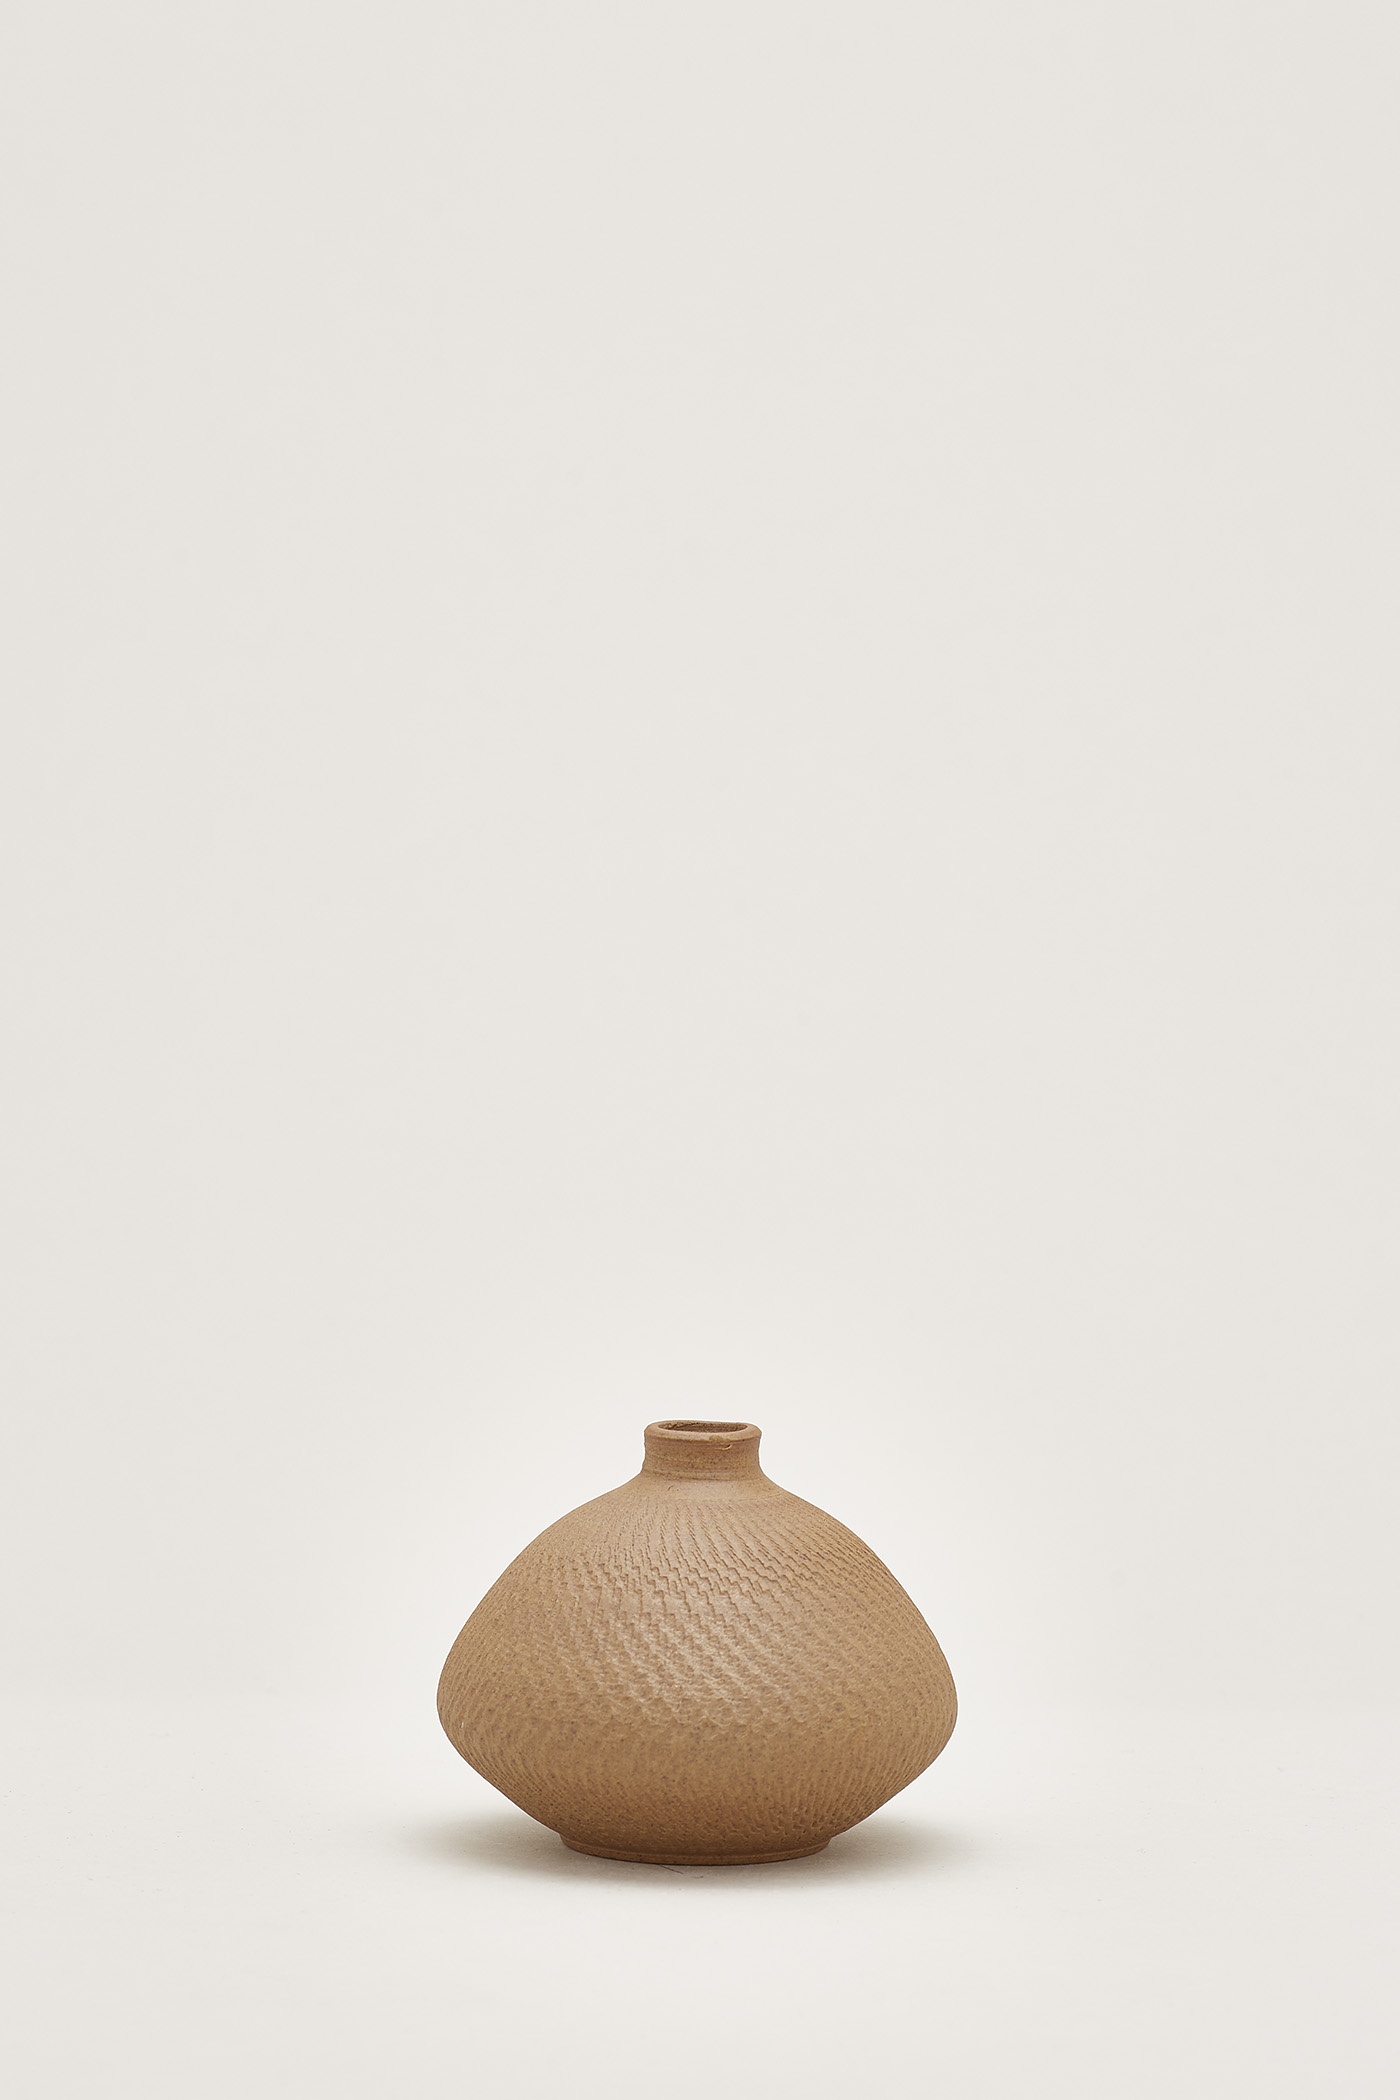 Taigen Small Sphere Vase